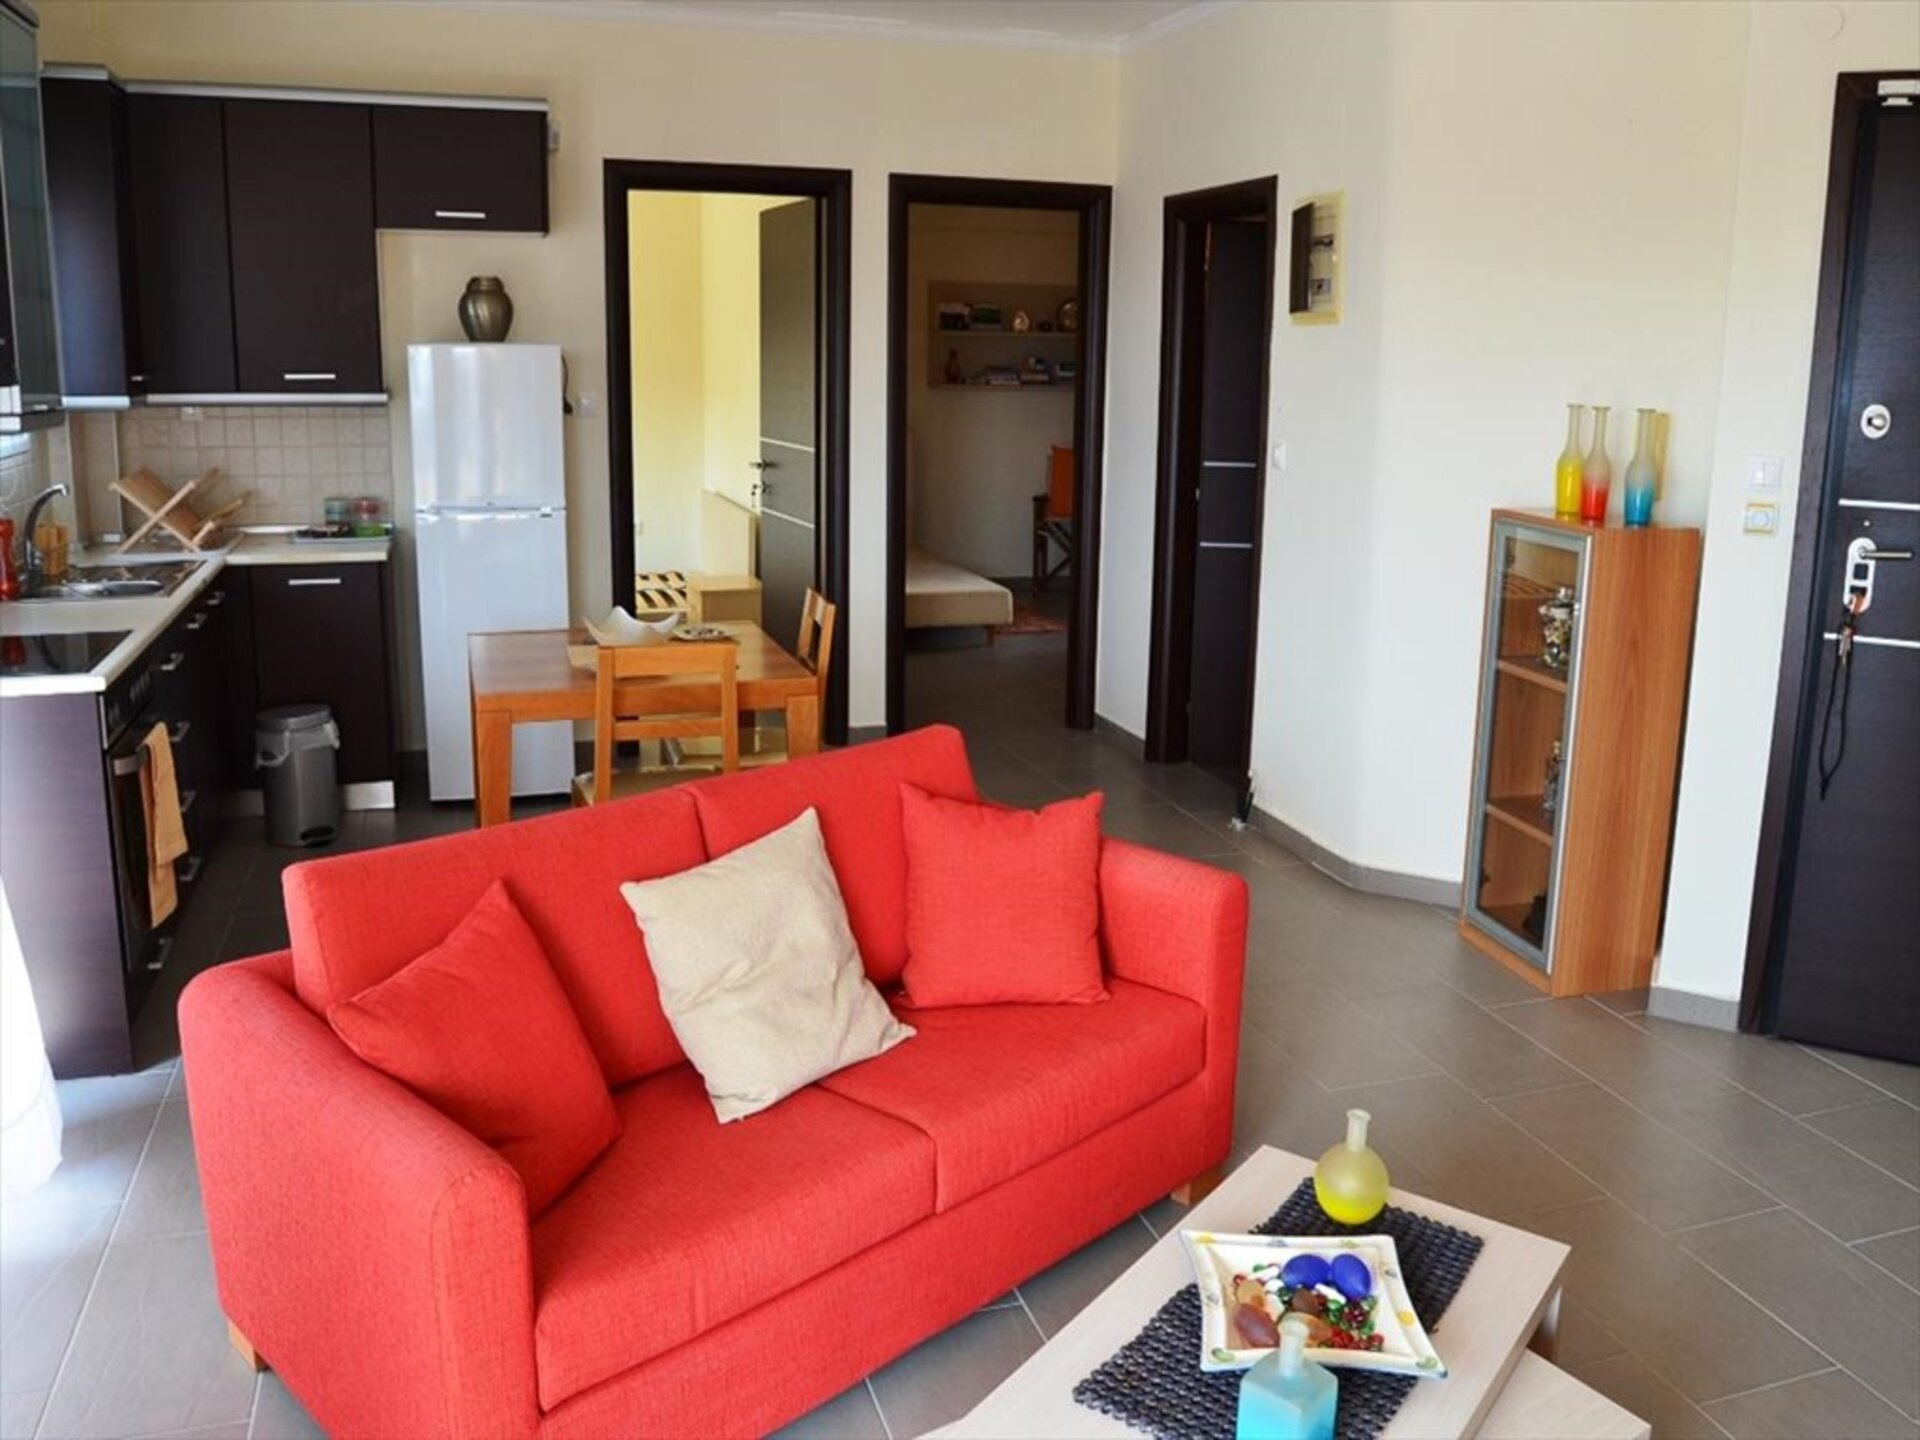 2 bedroom Flat  in Kallithea  RE0172